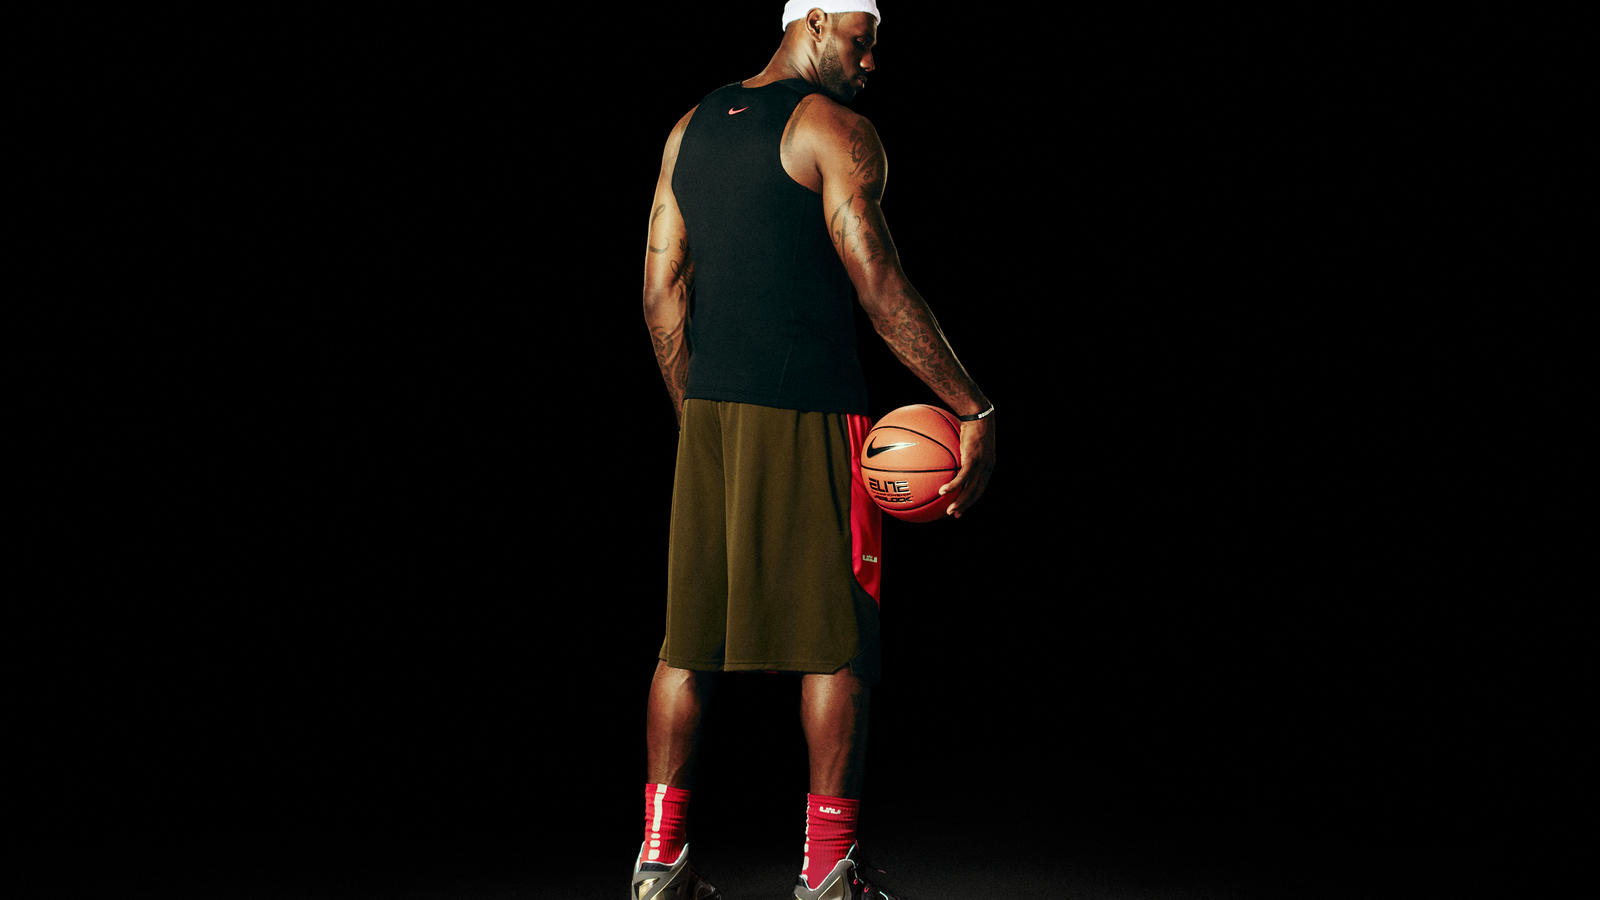 Lebron 11 Provides A Protective Suit For Lebron Jamess Powerful